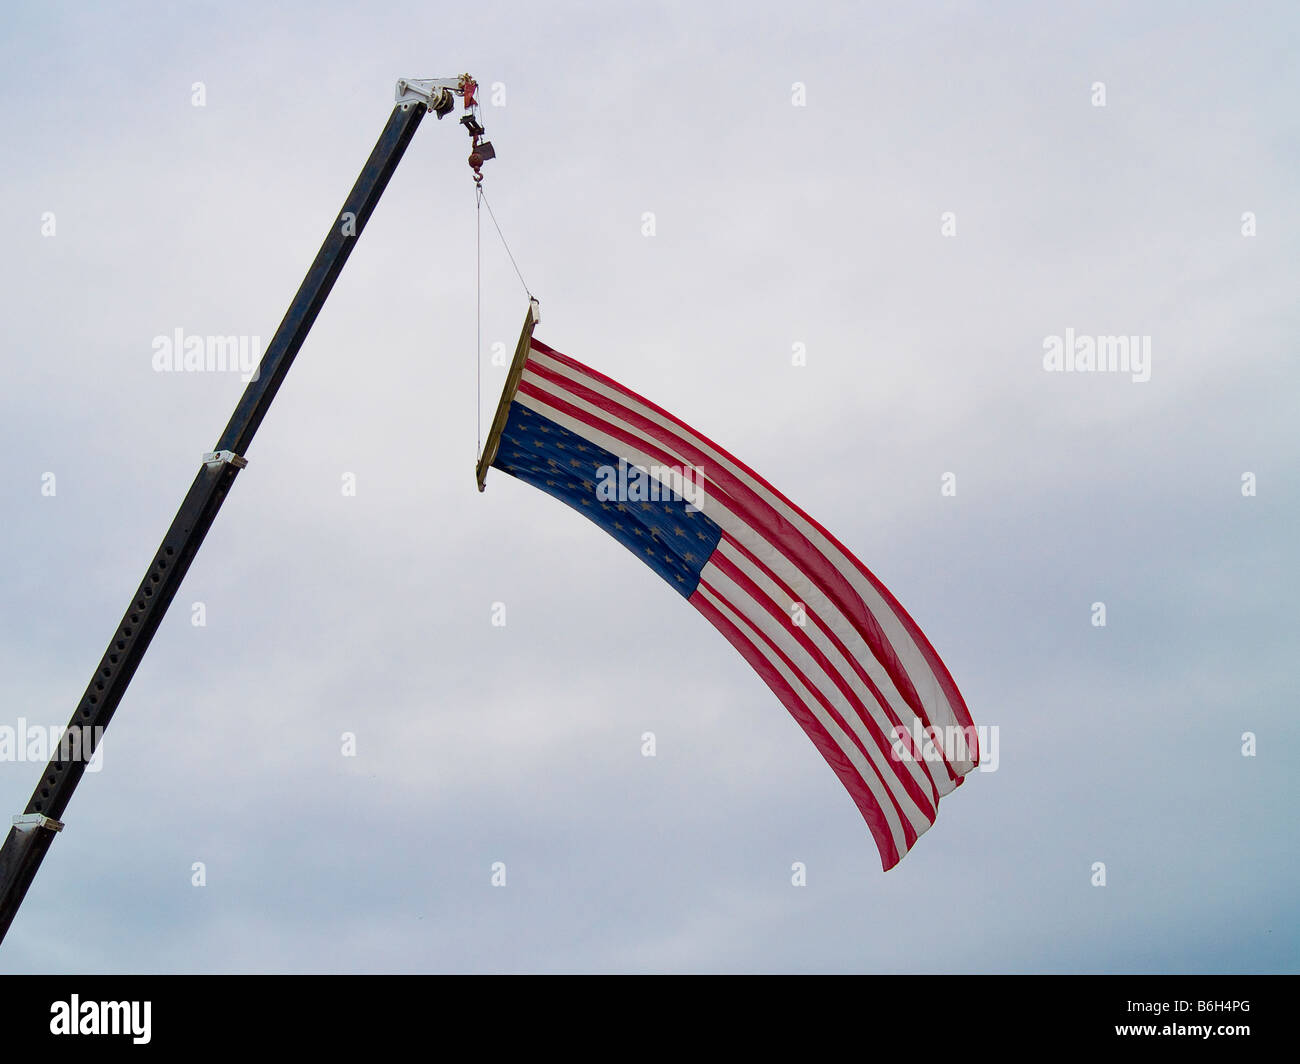 A close up on the American flag suspended from a crane - Stock Image